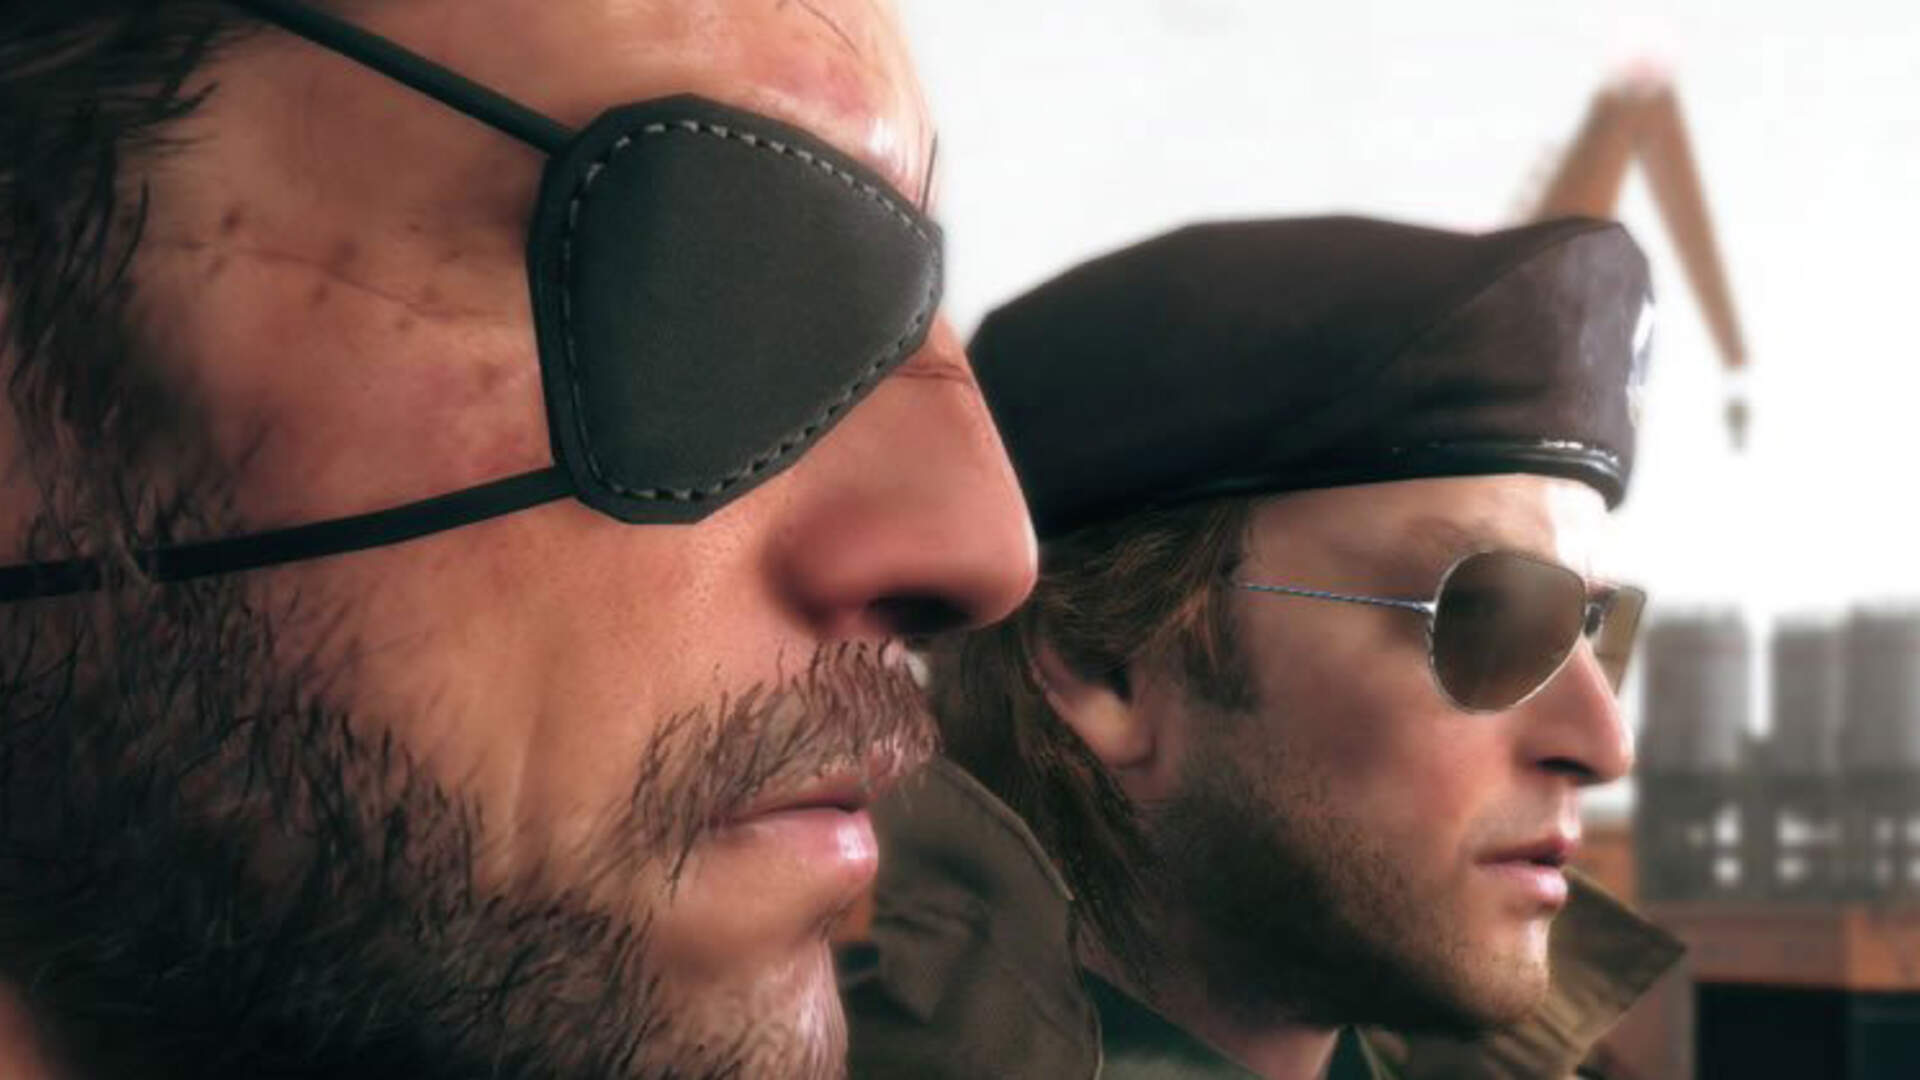 Metal Gear Solid V Story Guide: What Happened and How it Connects to the Rest of the Series - Unlock Mission 46